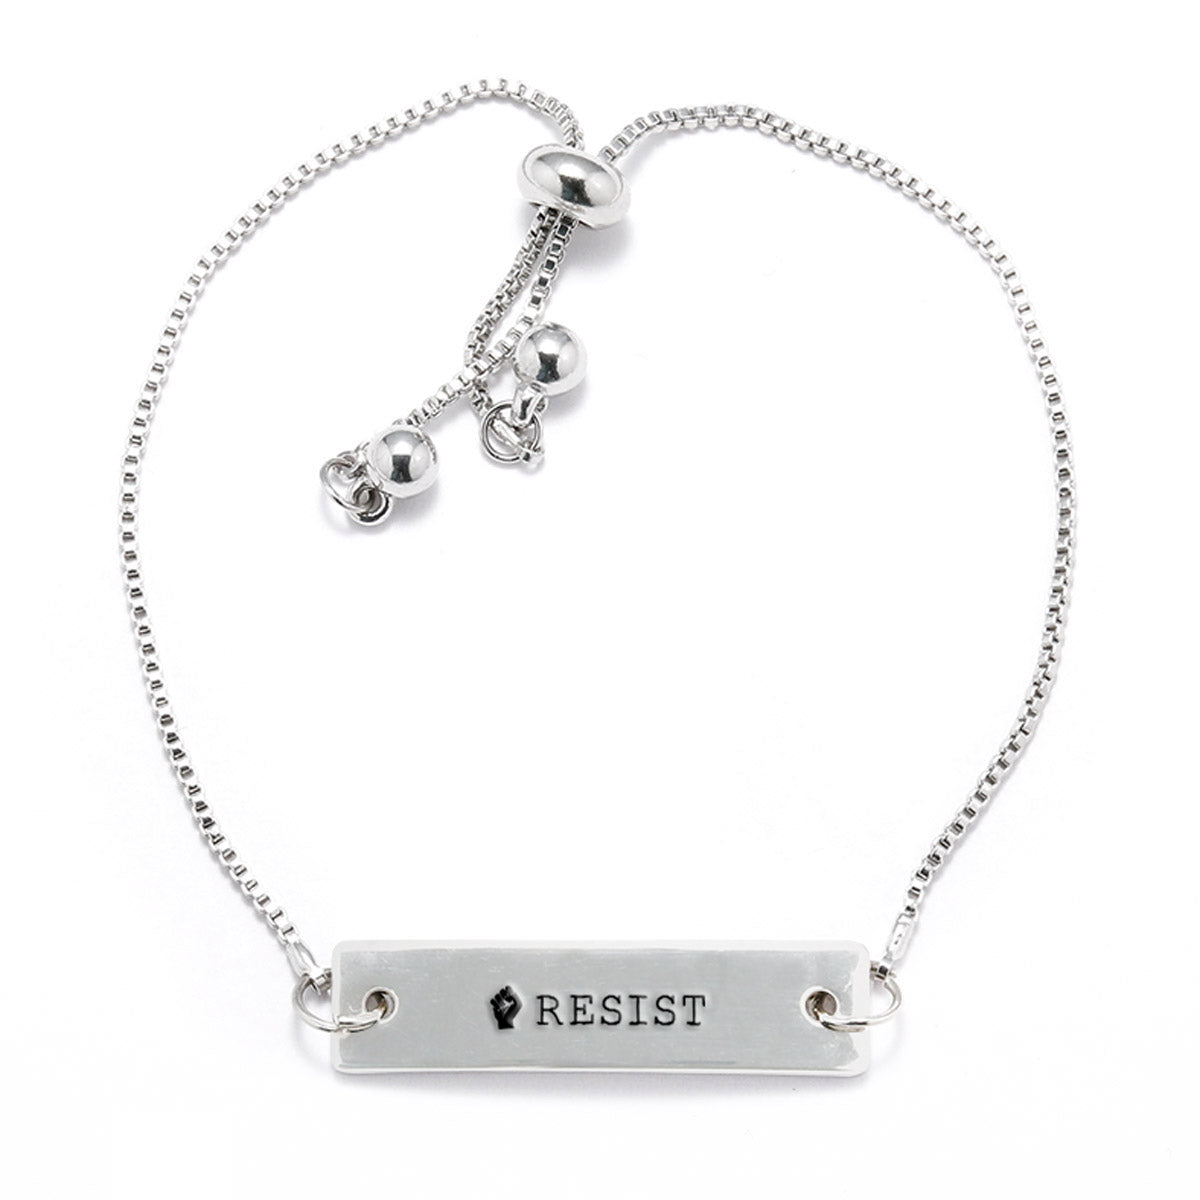 Resist Silver Bar Adjustable Bracelet